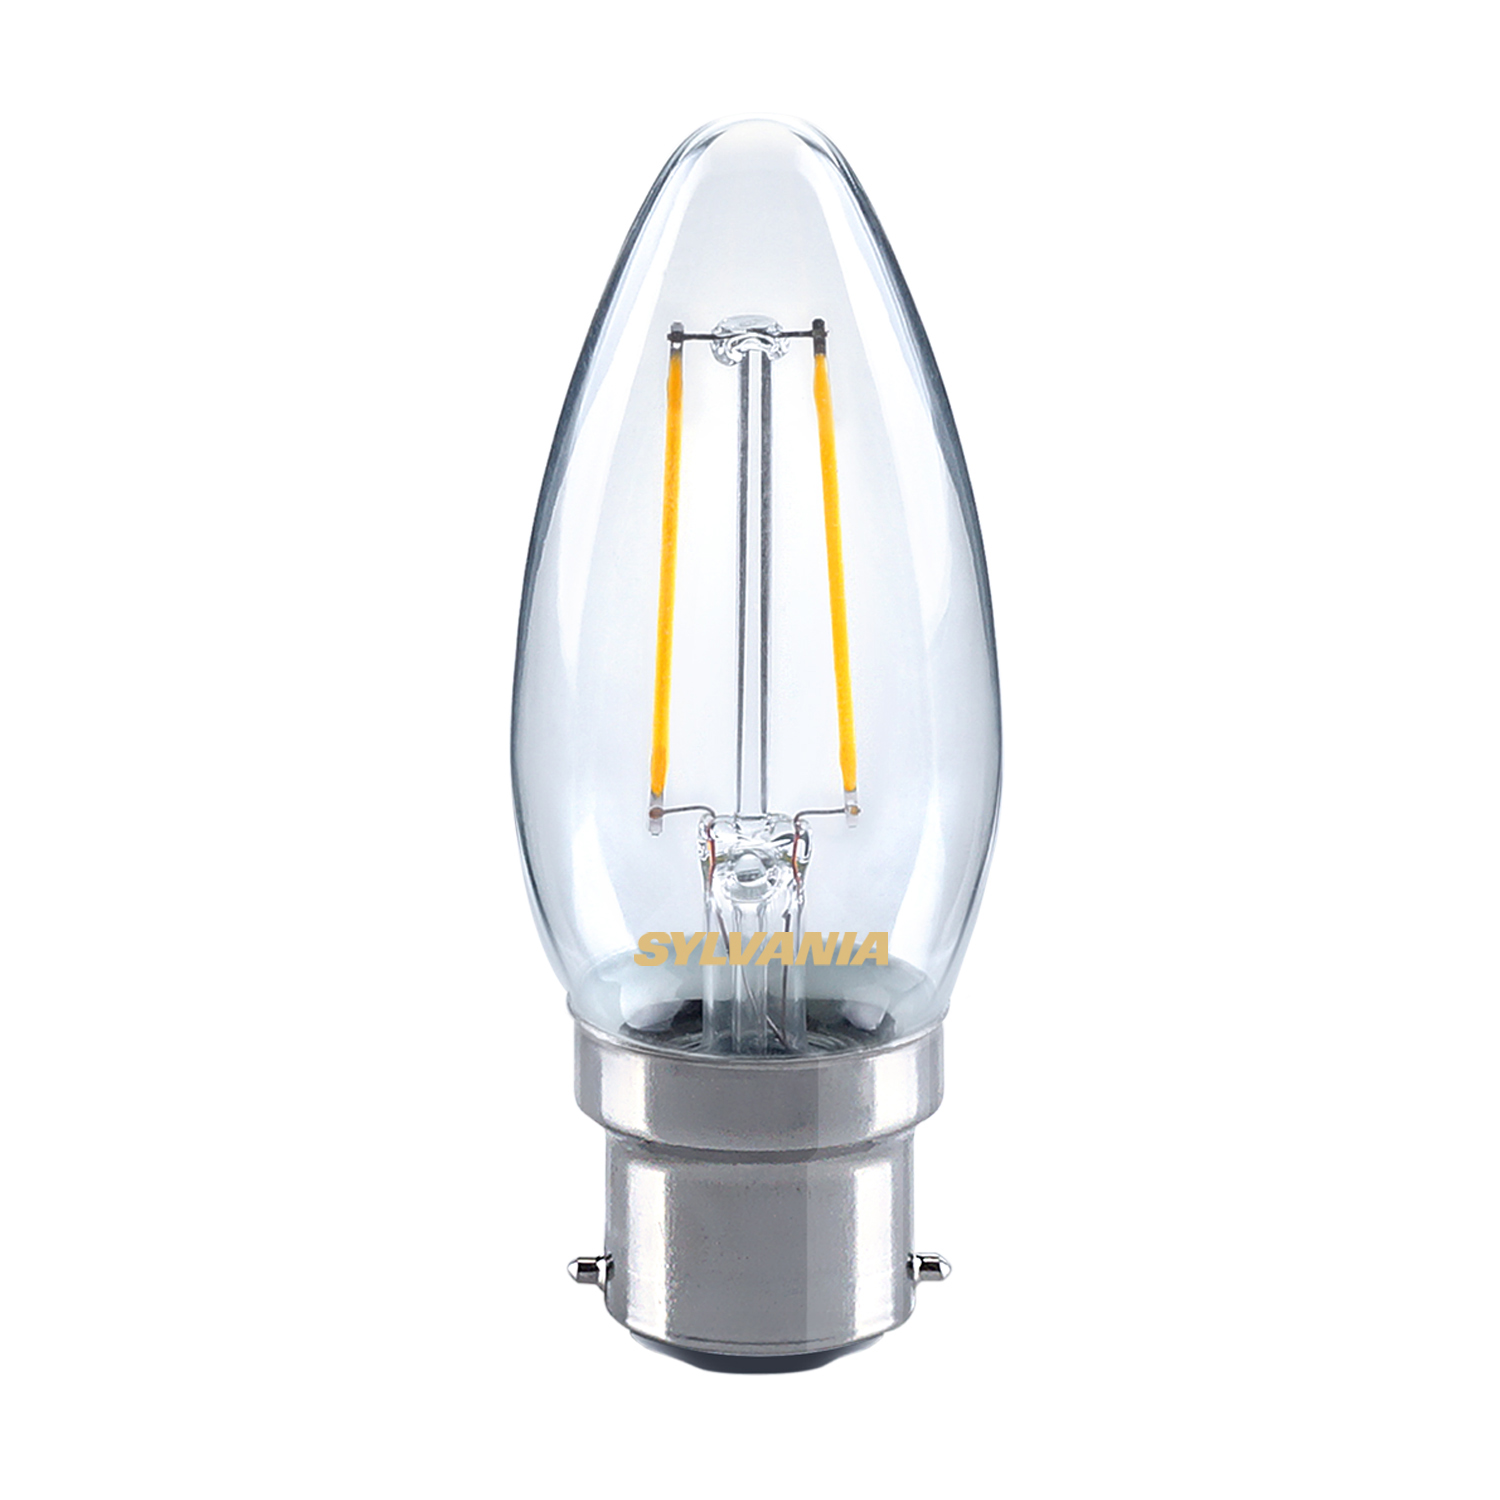 Sylvania 2.5W LED traditional candle light bulb B22 BC warm white 2700K Thumbnail 1